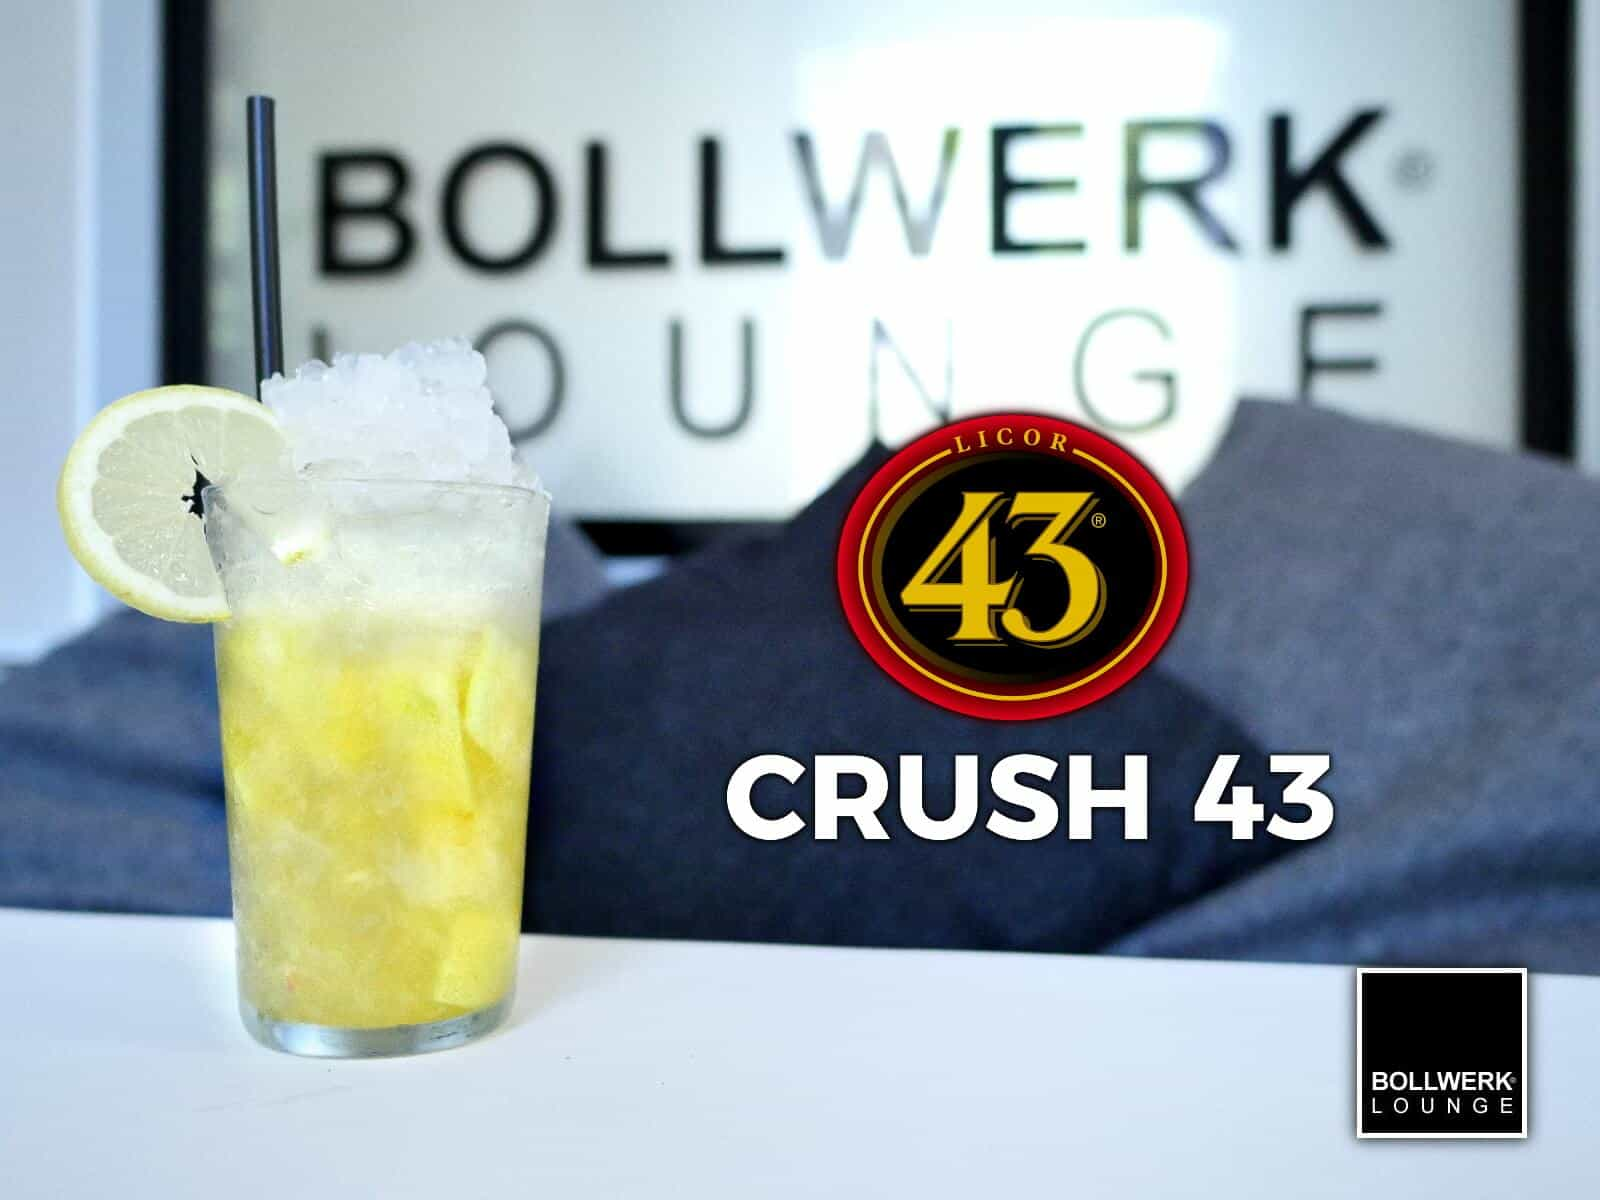 Crush_43_Bollwerk_lounge